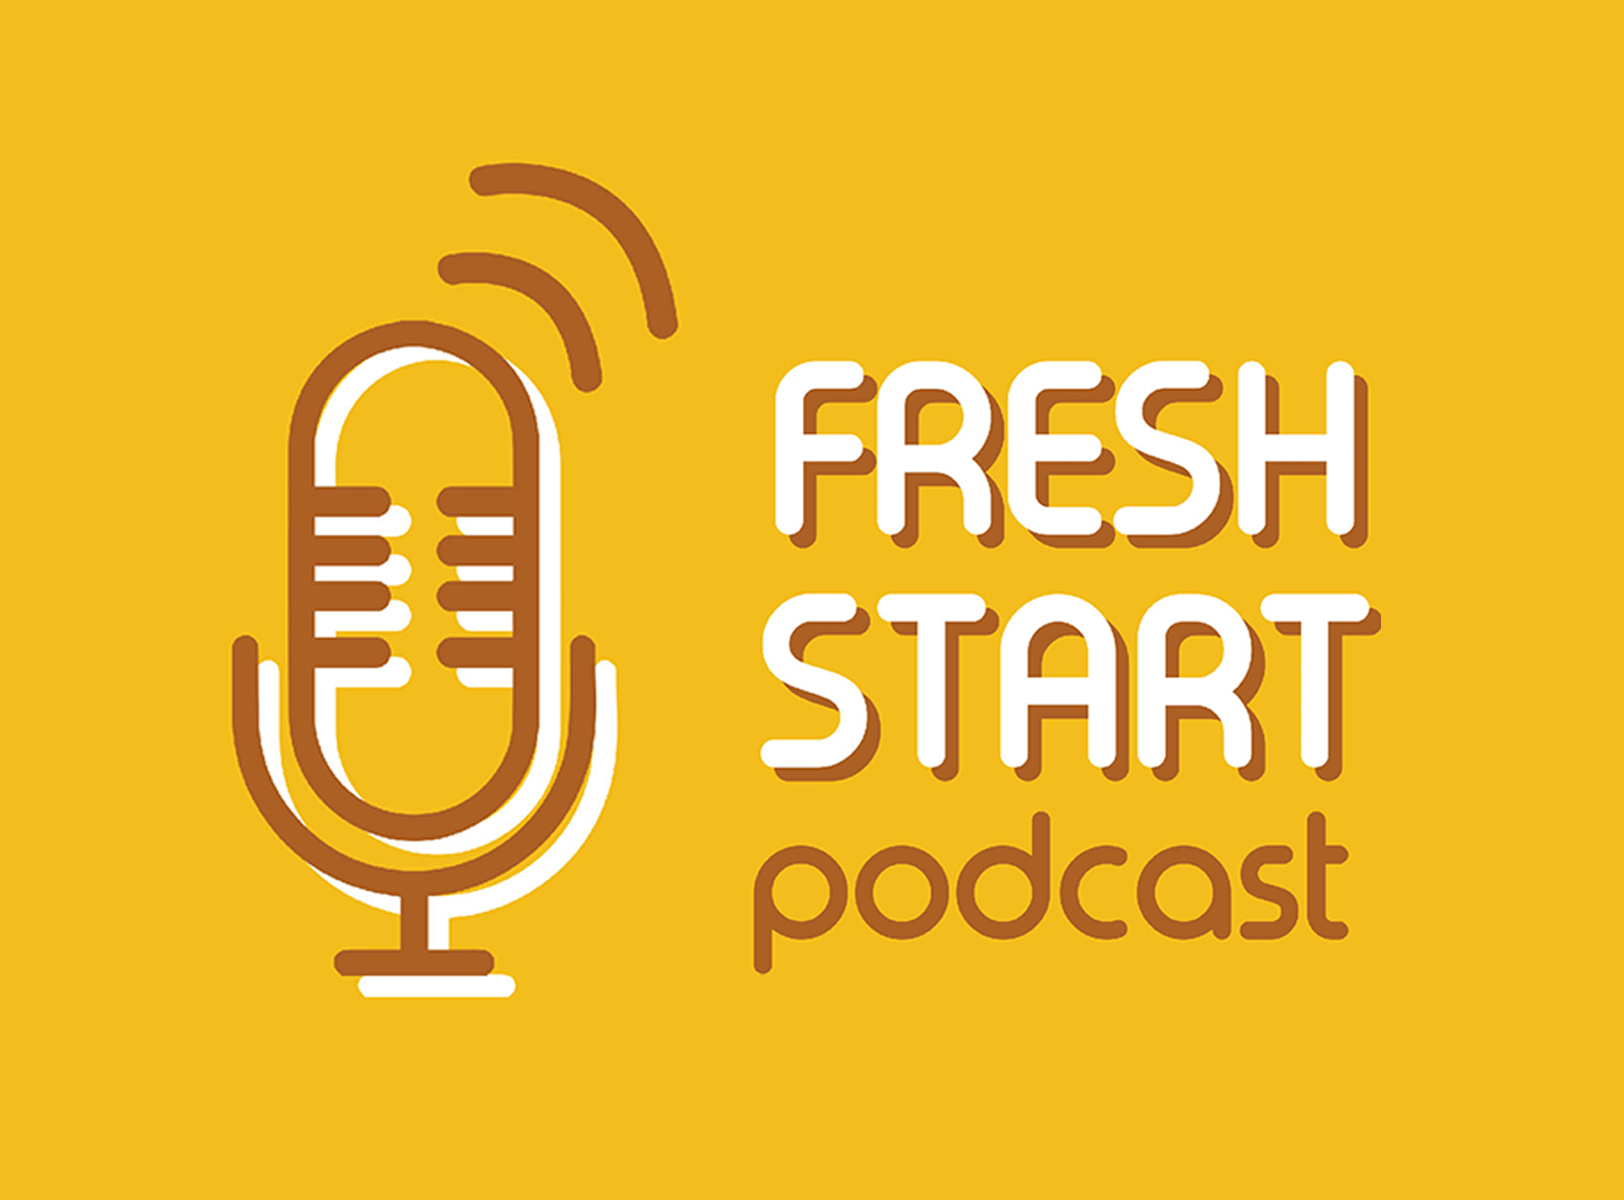 Fresh Start: Podcast News (5/29/2020 Fri.)